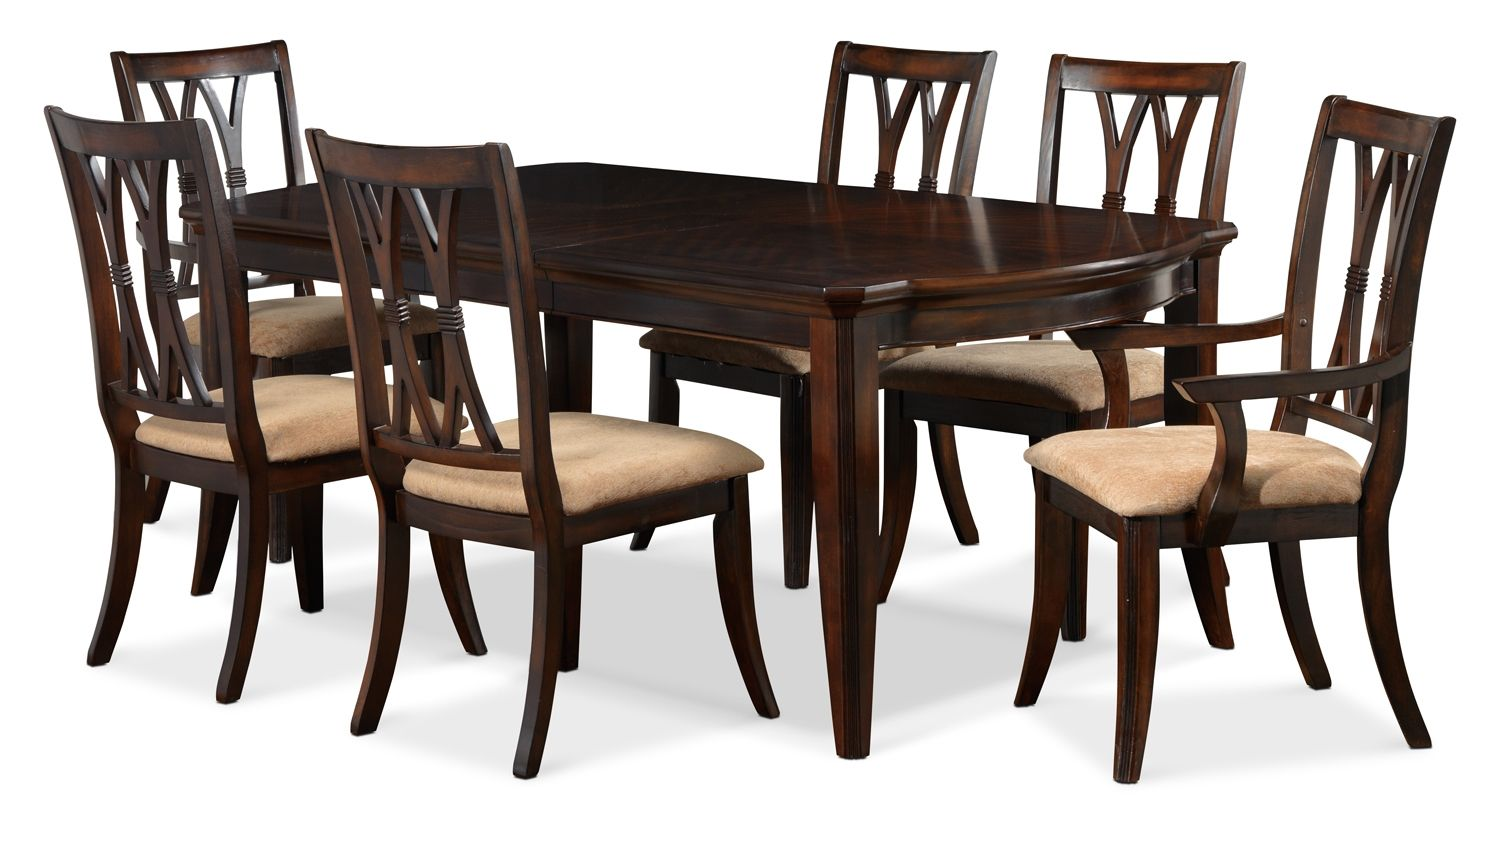 King George Dining Room 7 Pc Set